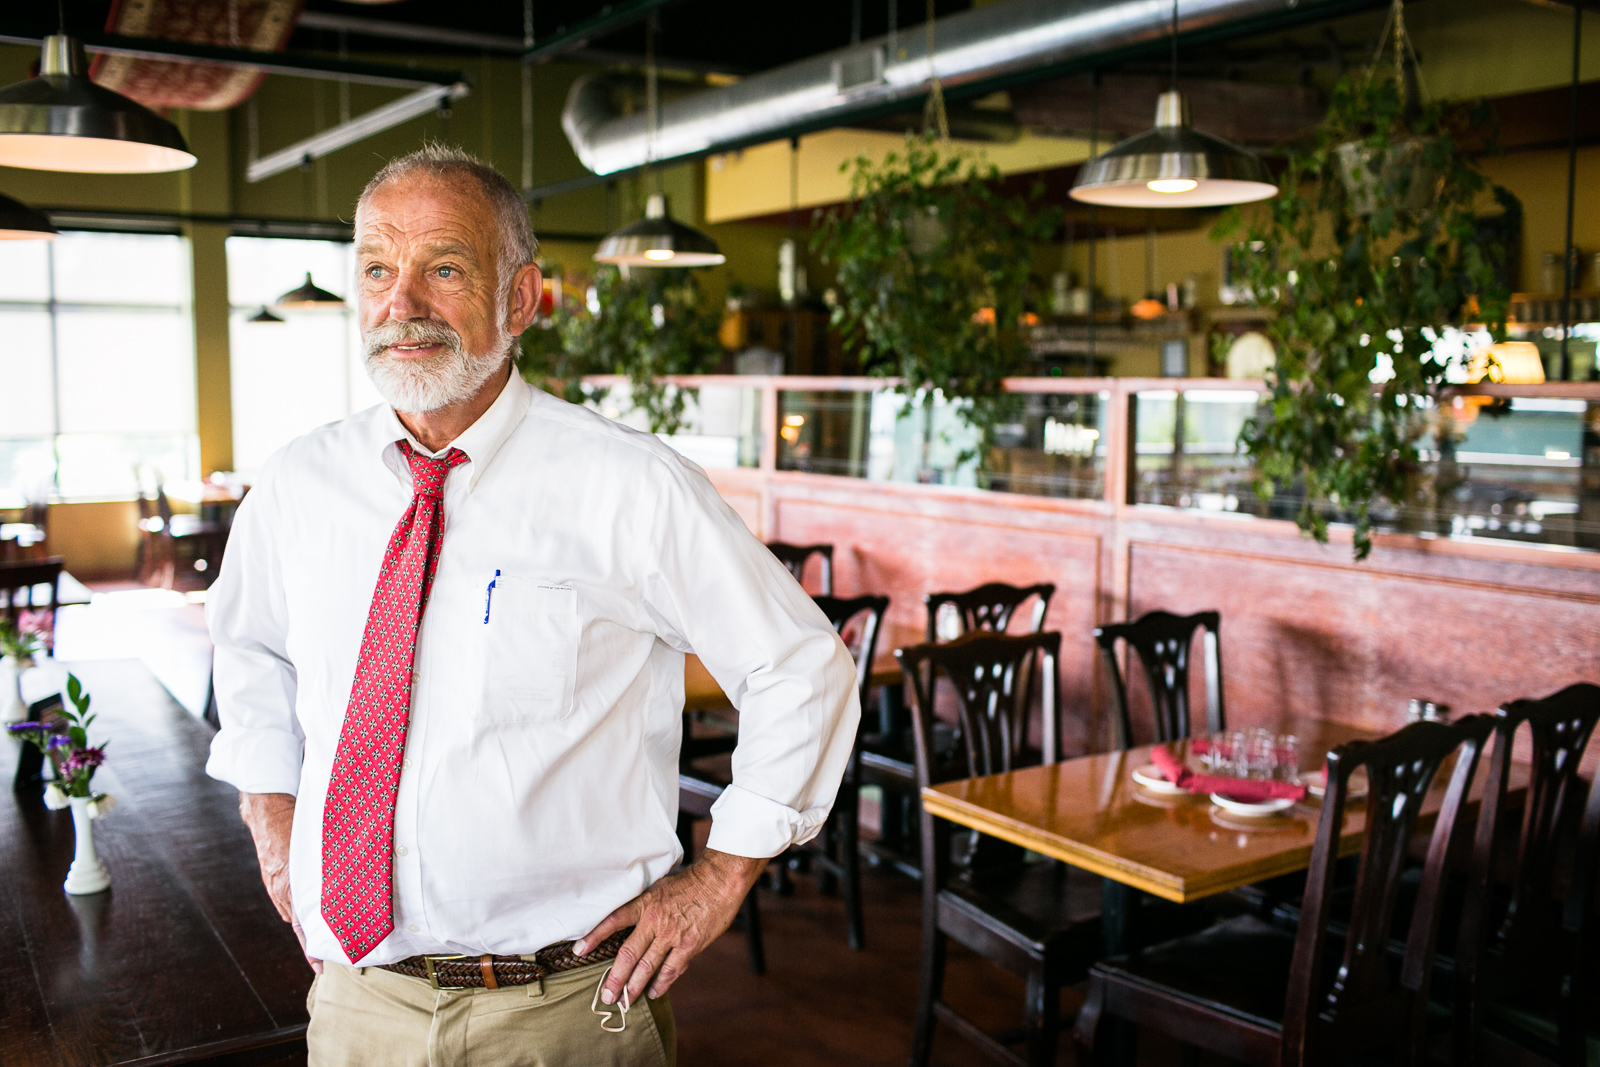 Will Patten, owner of the Hinesburgh Public House, on Wednesday, August 10, 2016.